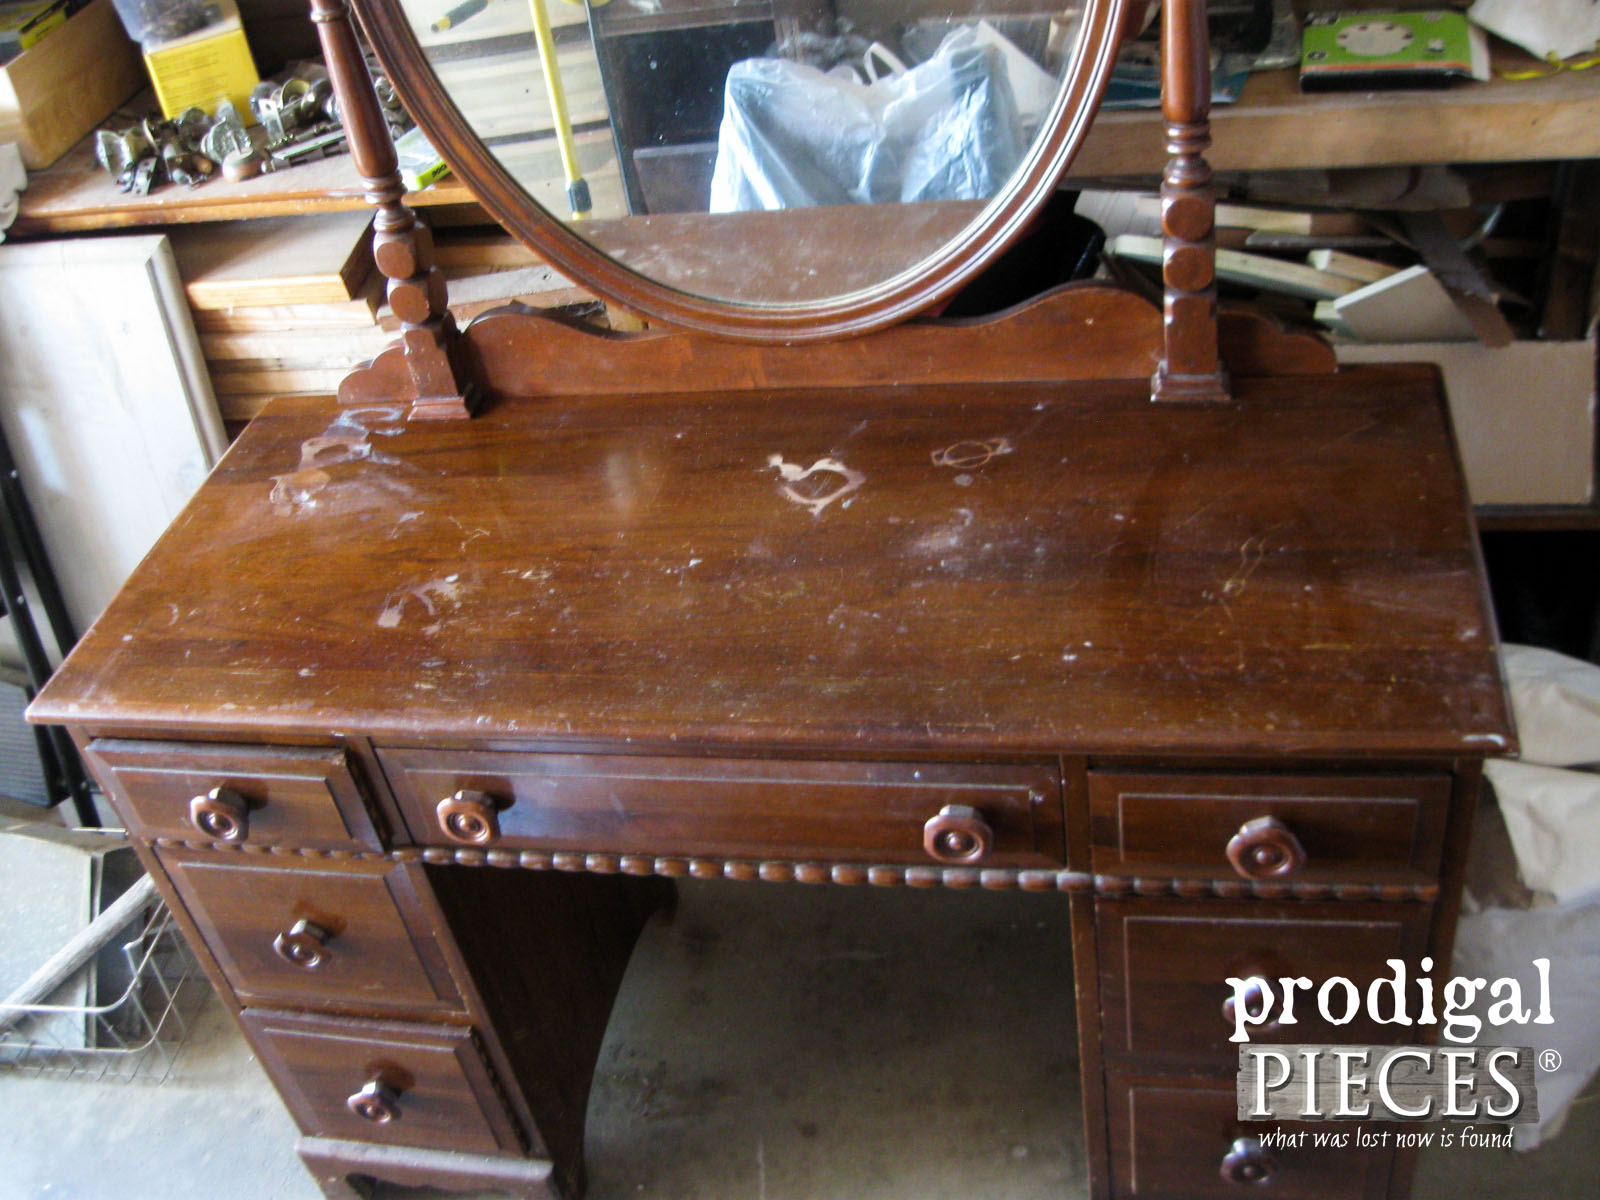 Top of Damaged Kroehler Vintage Vanity | Prodigal Pieces | www.prodigalpieces.com